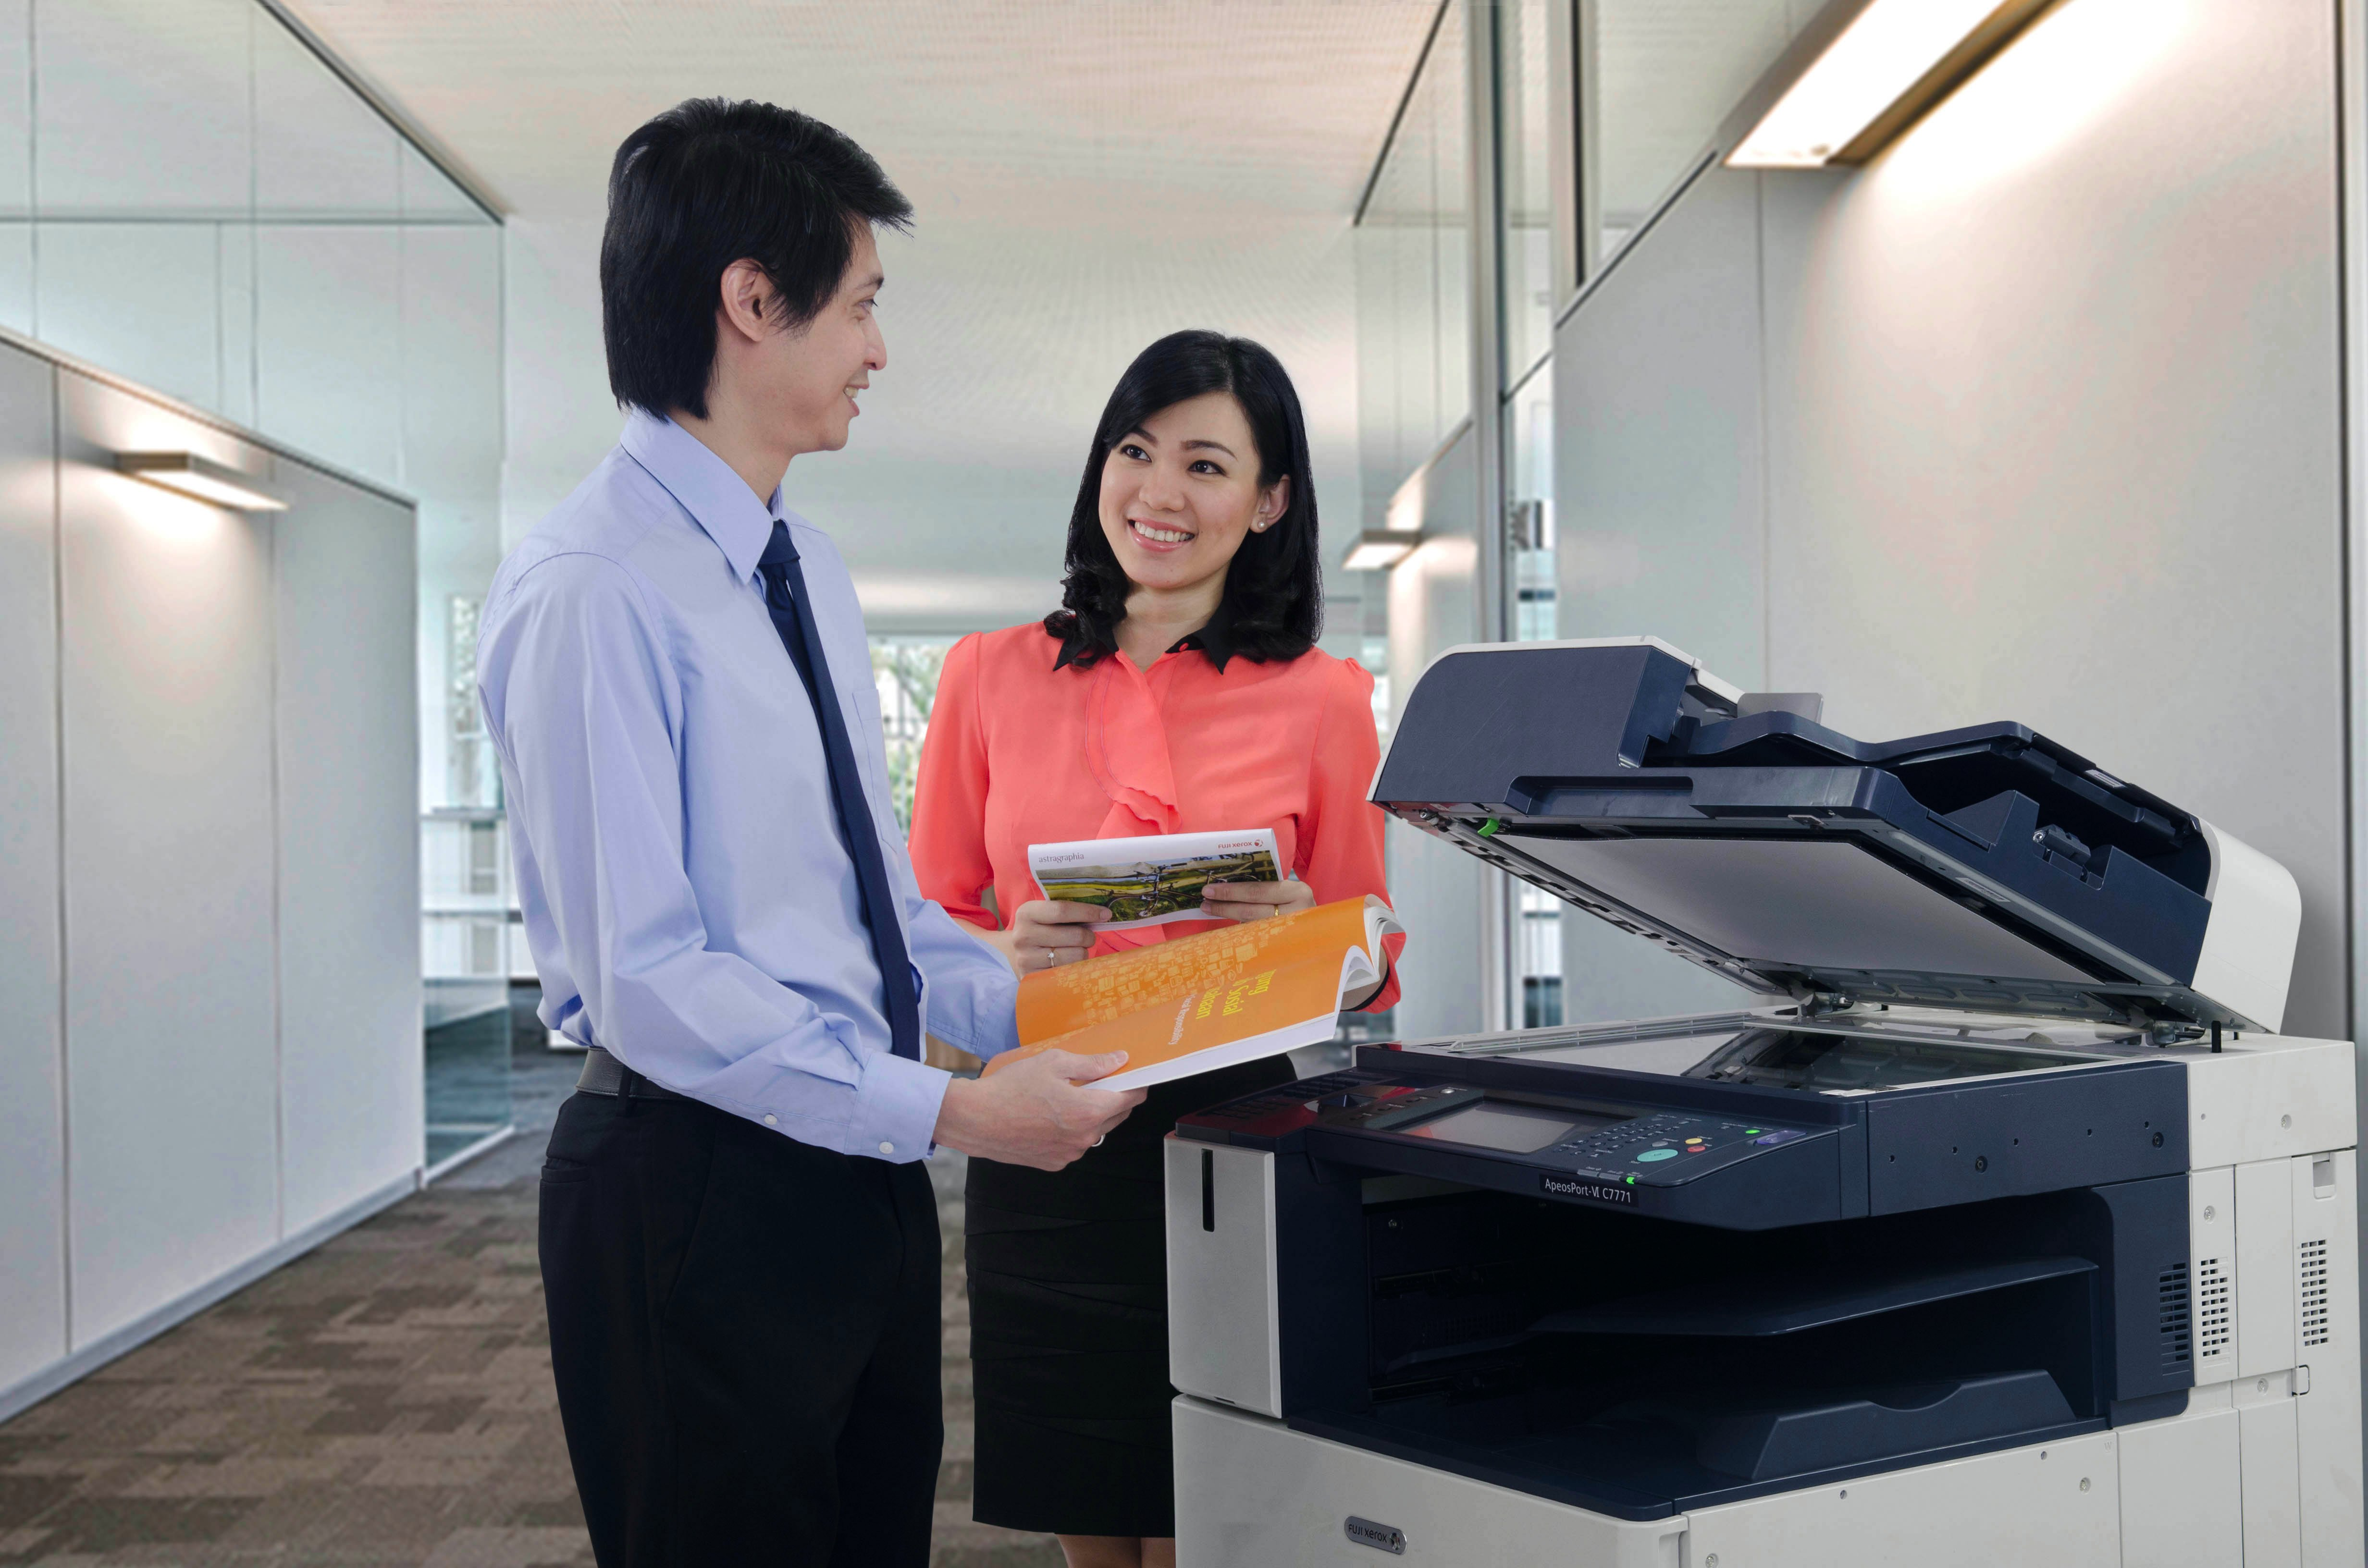 The existence of Fuji Xerox in Indonesia